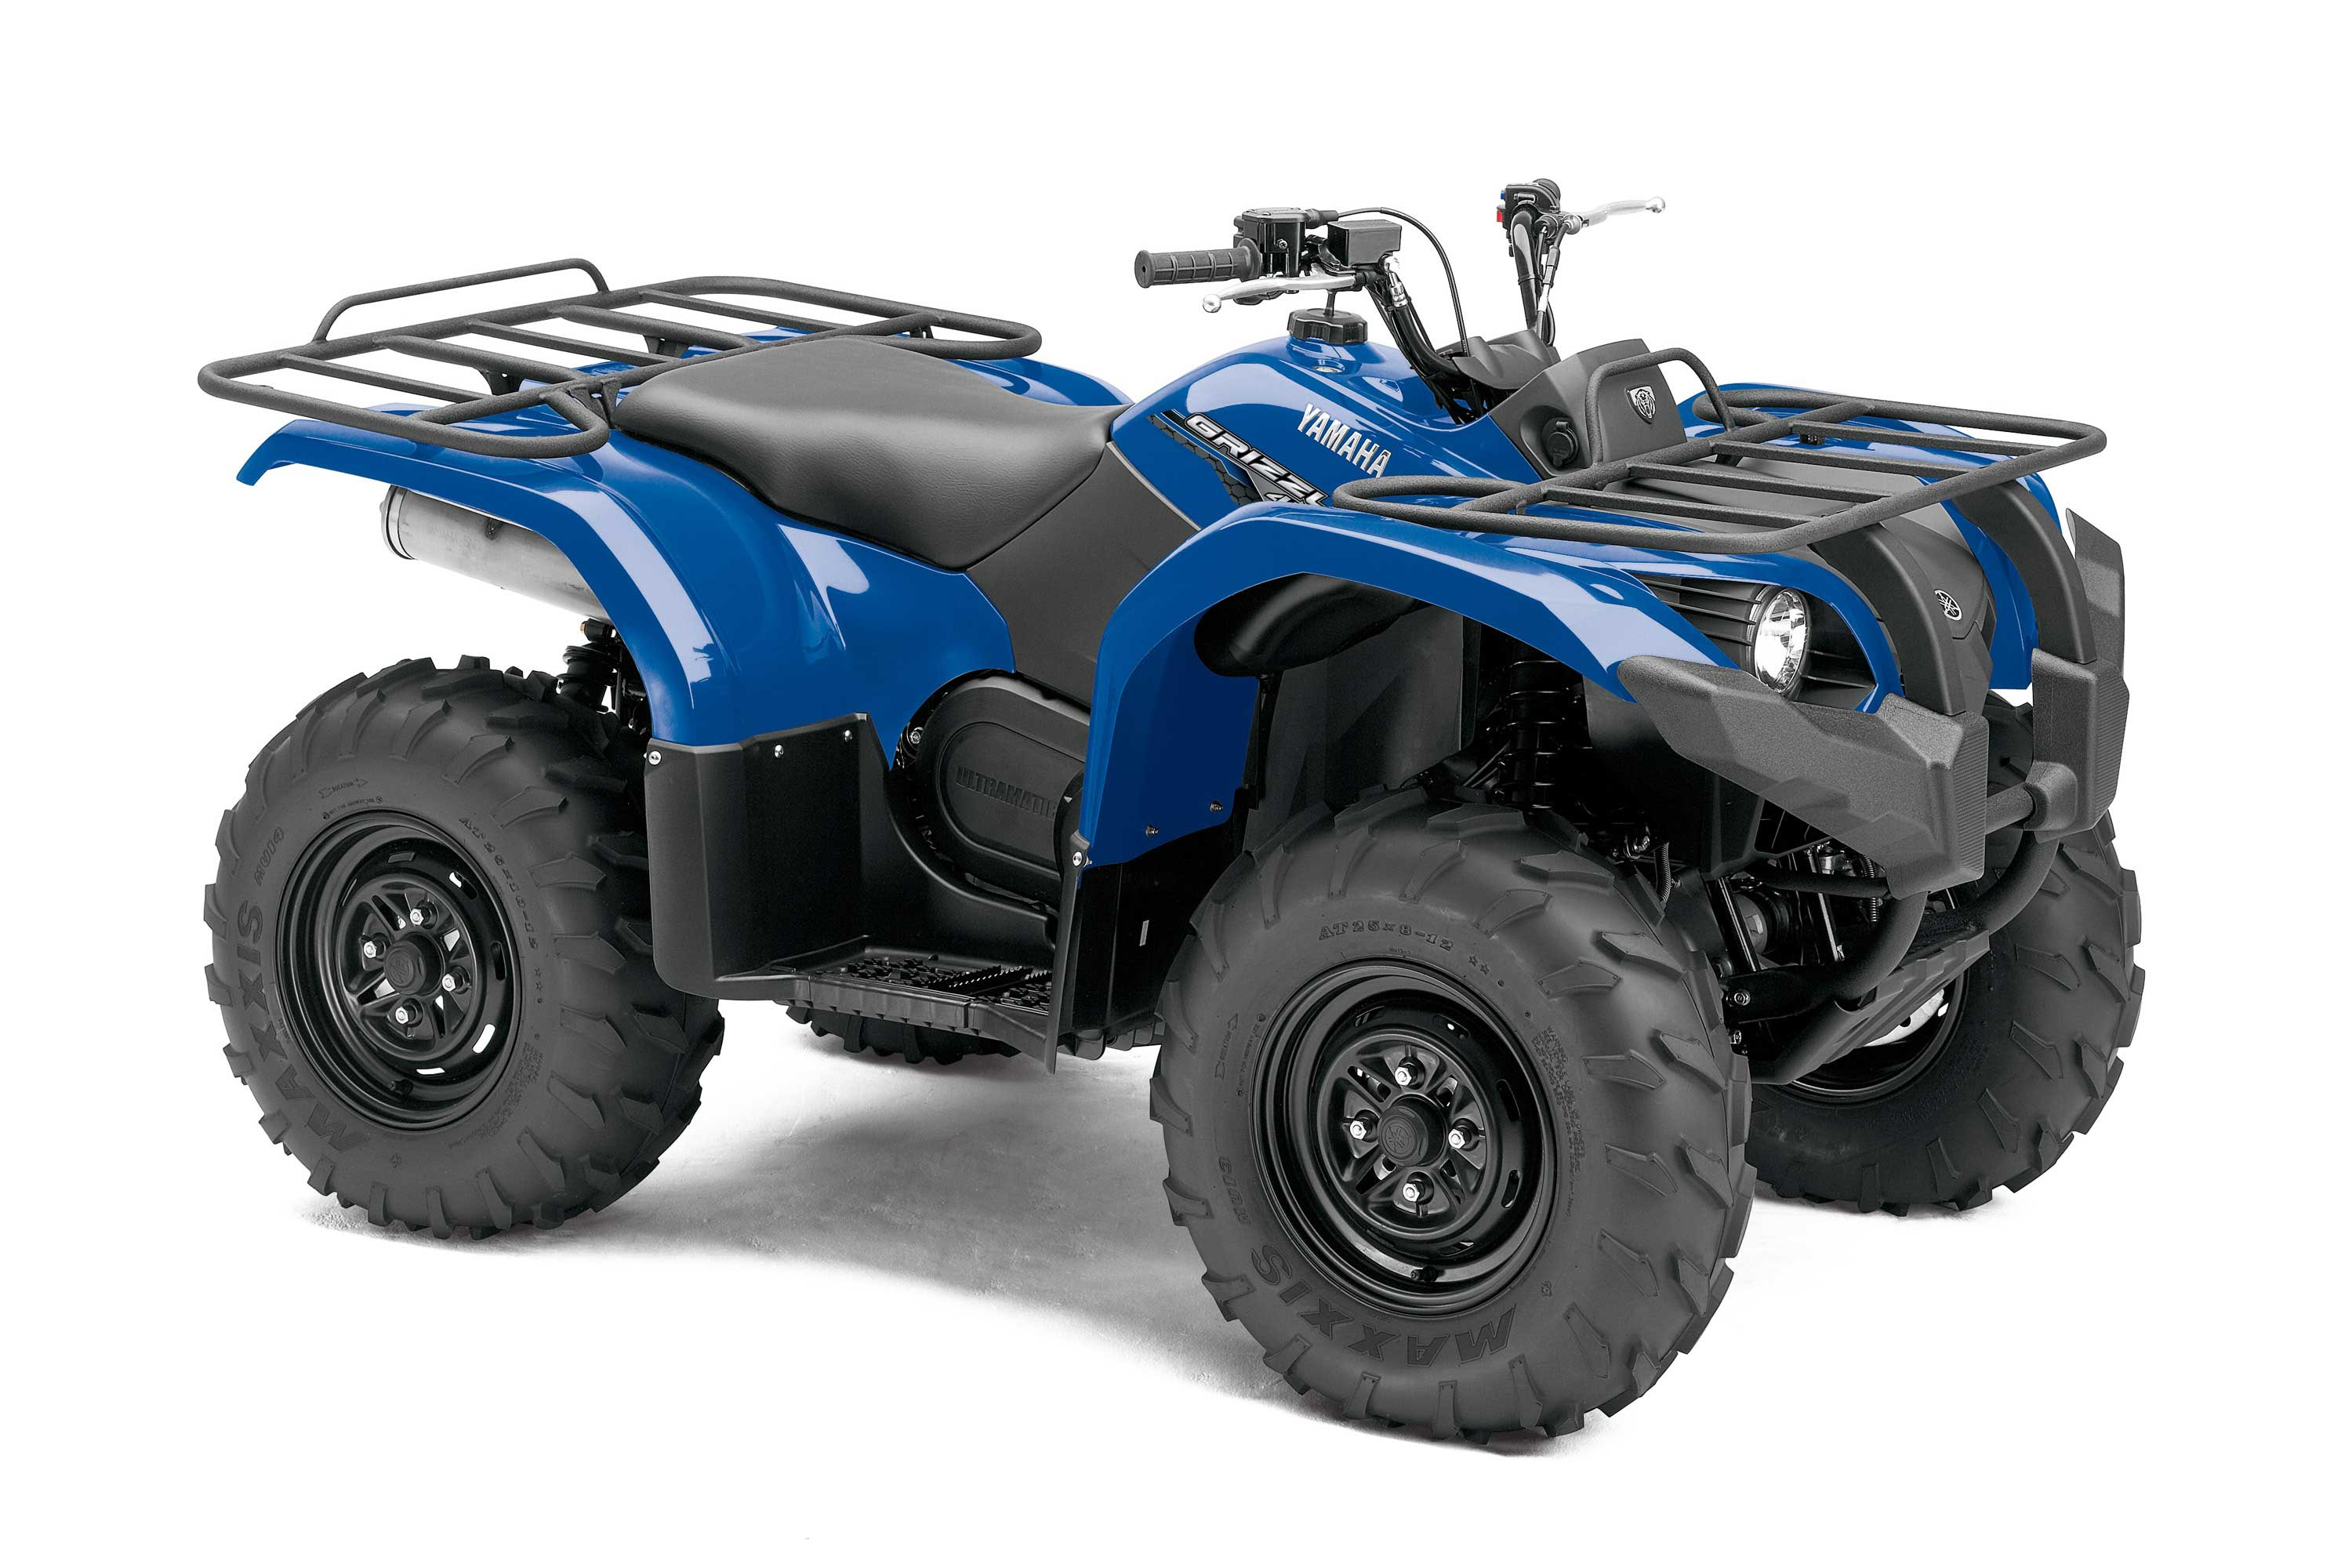 2014 Grizzly 450